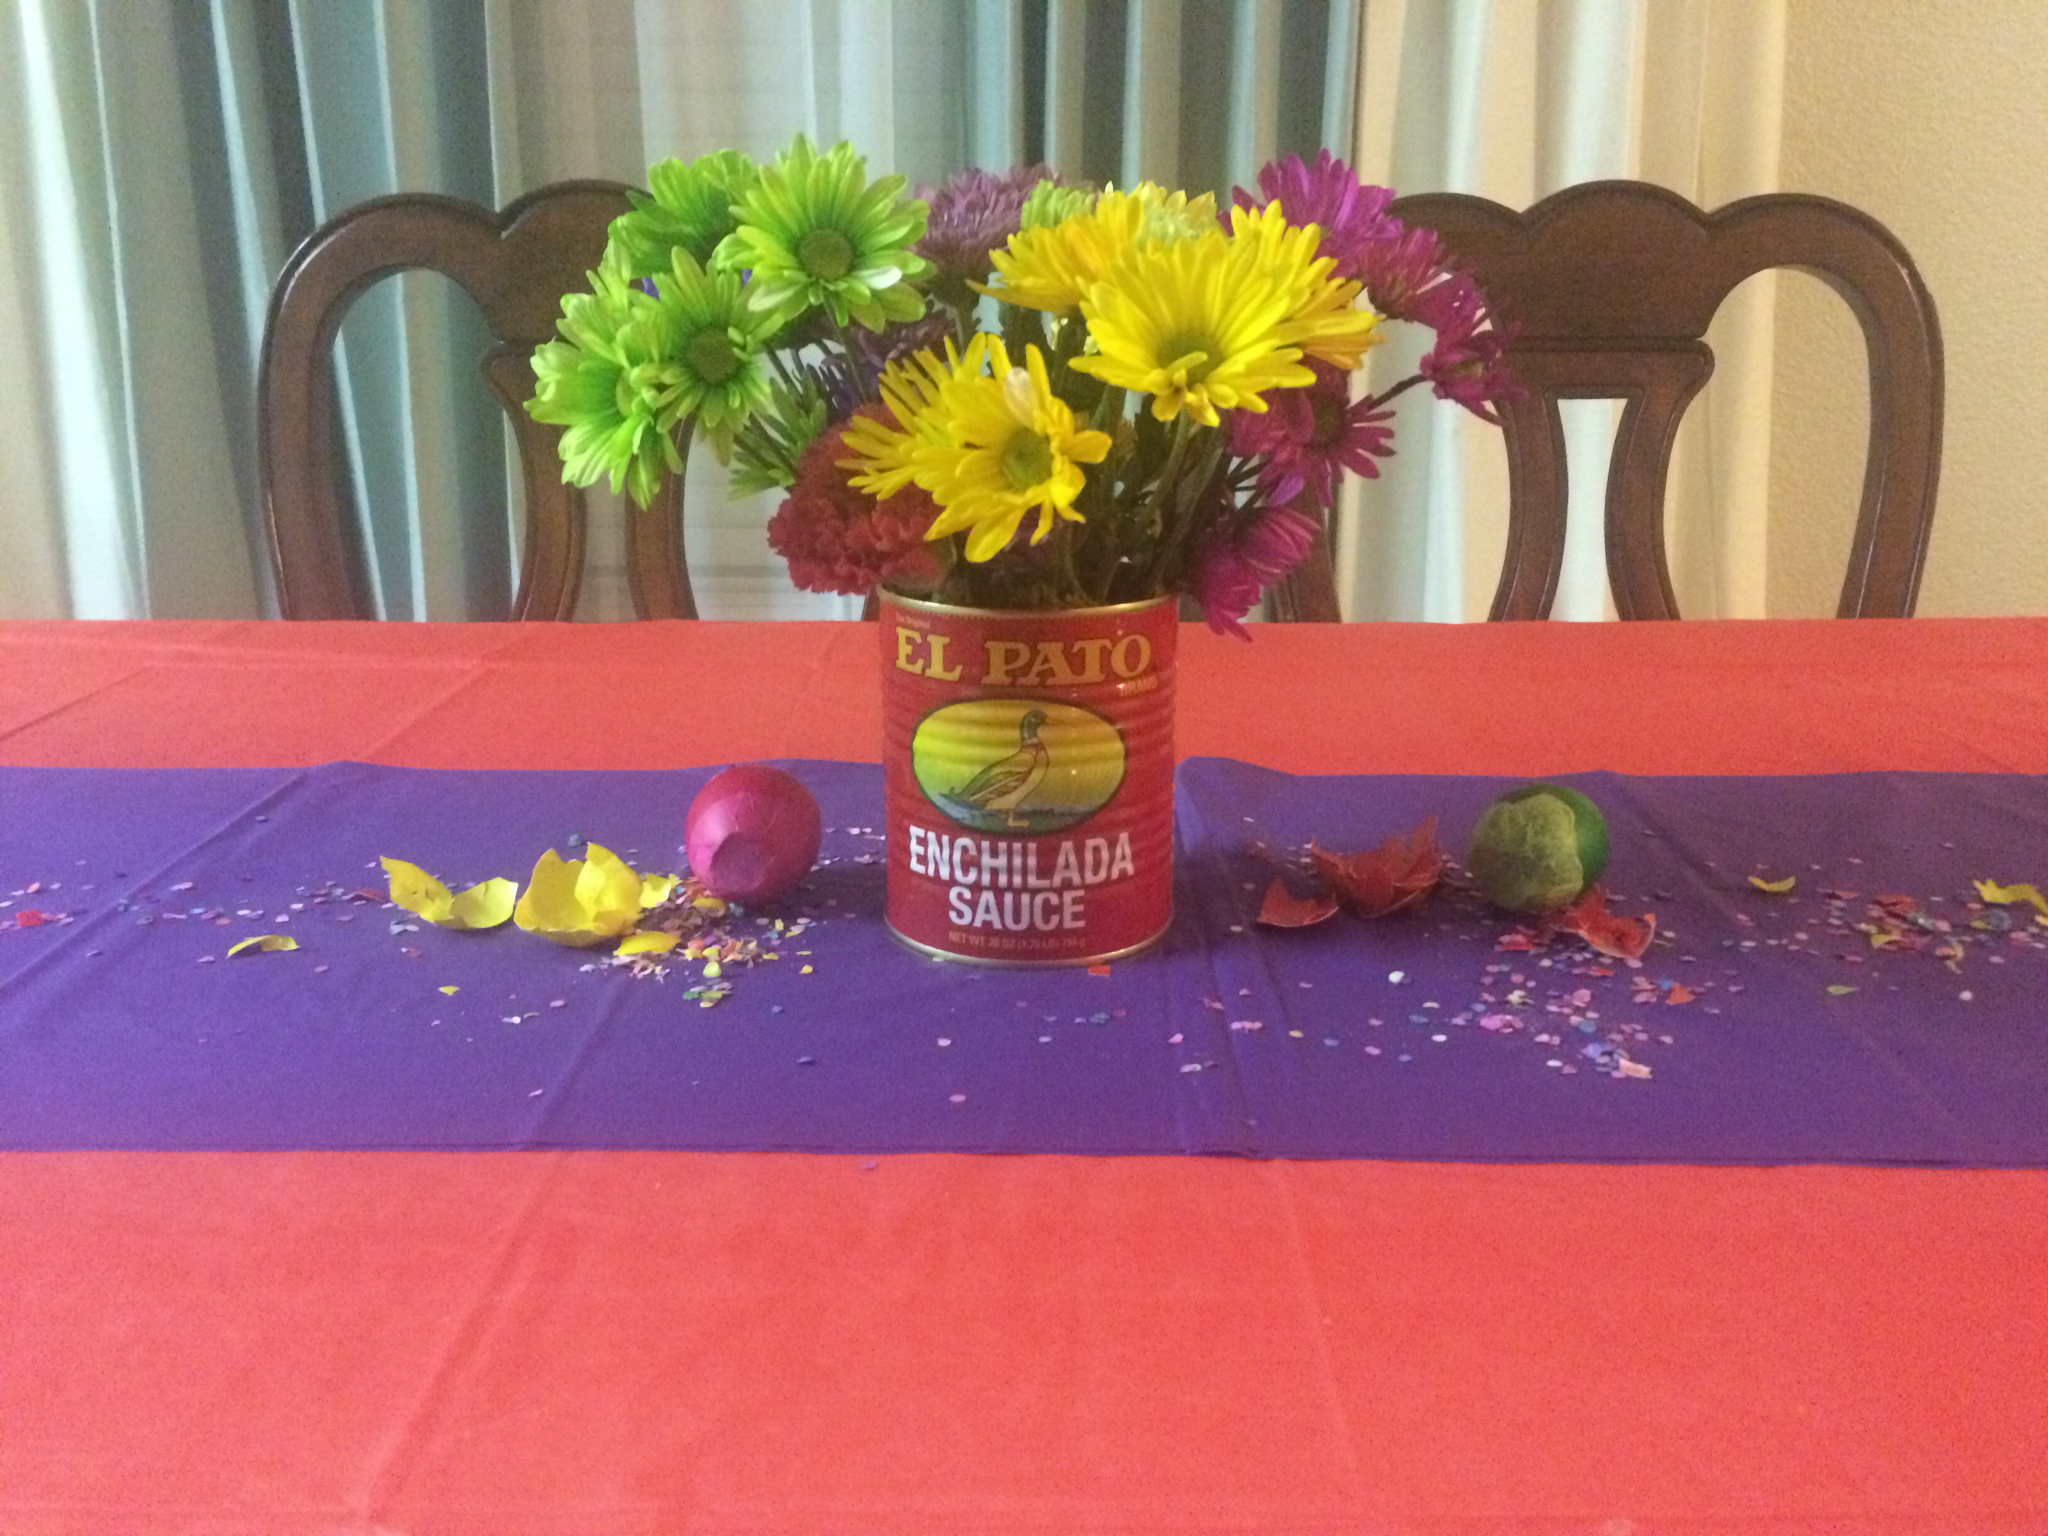 Fiesta Table Decorations Crafty Imaginings Silly Things Its A Fiesta